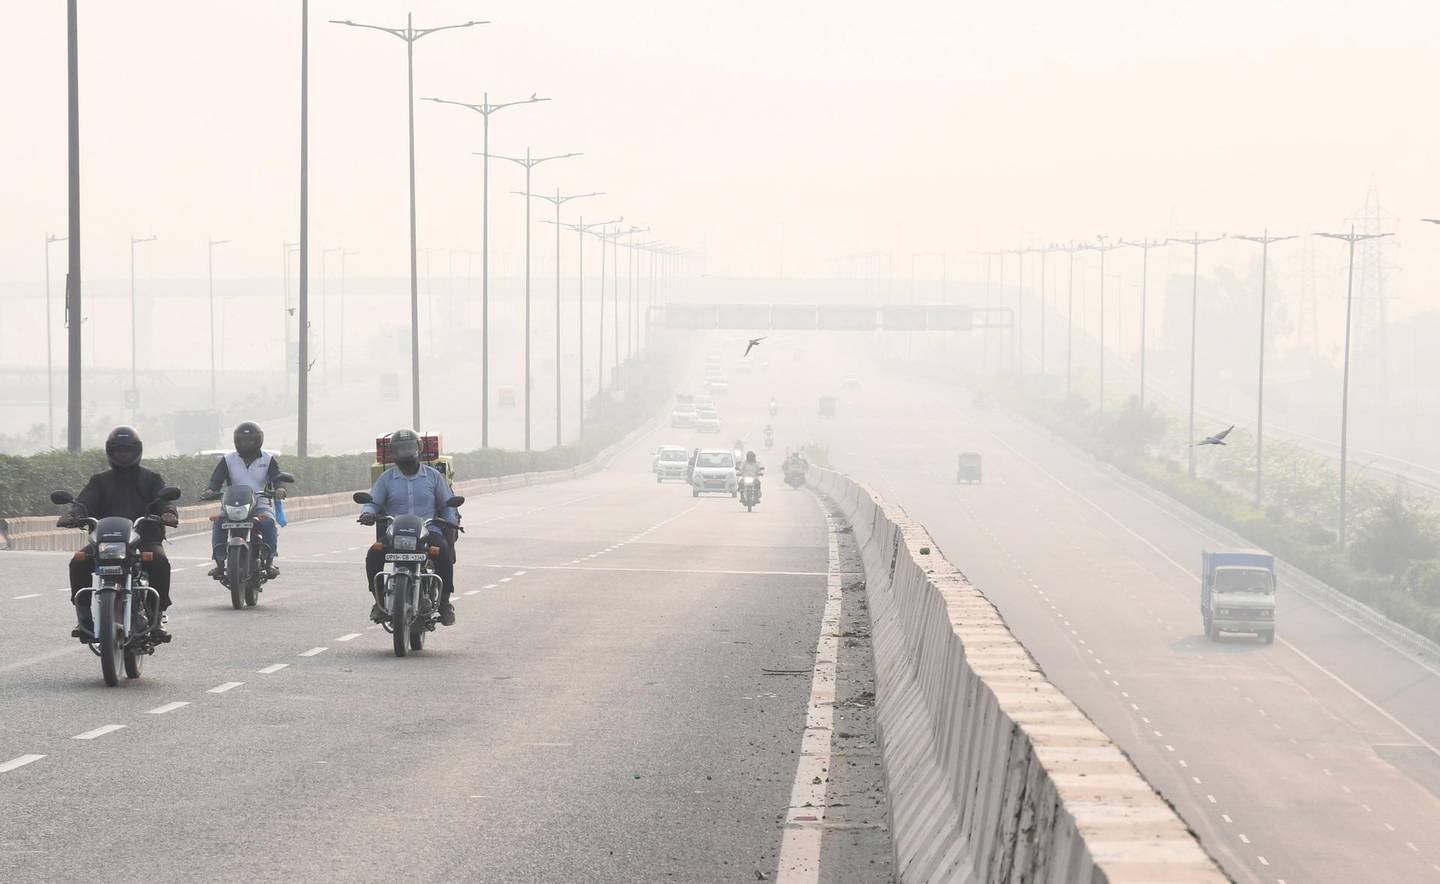 epa07955818 Haze blankets the streets after the Diwali celebrations in New Delhi, India, 28 October 2019. Levels of pollutants and smog in India rise every year on the day following Diwali festival, as millions celebrate around the country by lighting firecrackers. According to media reports, on 28 October 2019 air pollution levels in New Delhi, Lucknow and Patna were worse than the ones recorded in 2018, despite a government's restriction on the sale and use of firecrackers in a bid to control air pollution.  EPA/STR